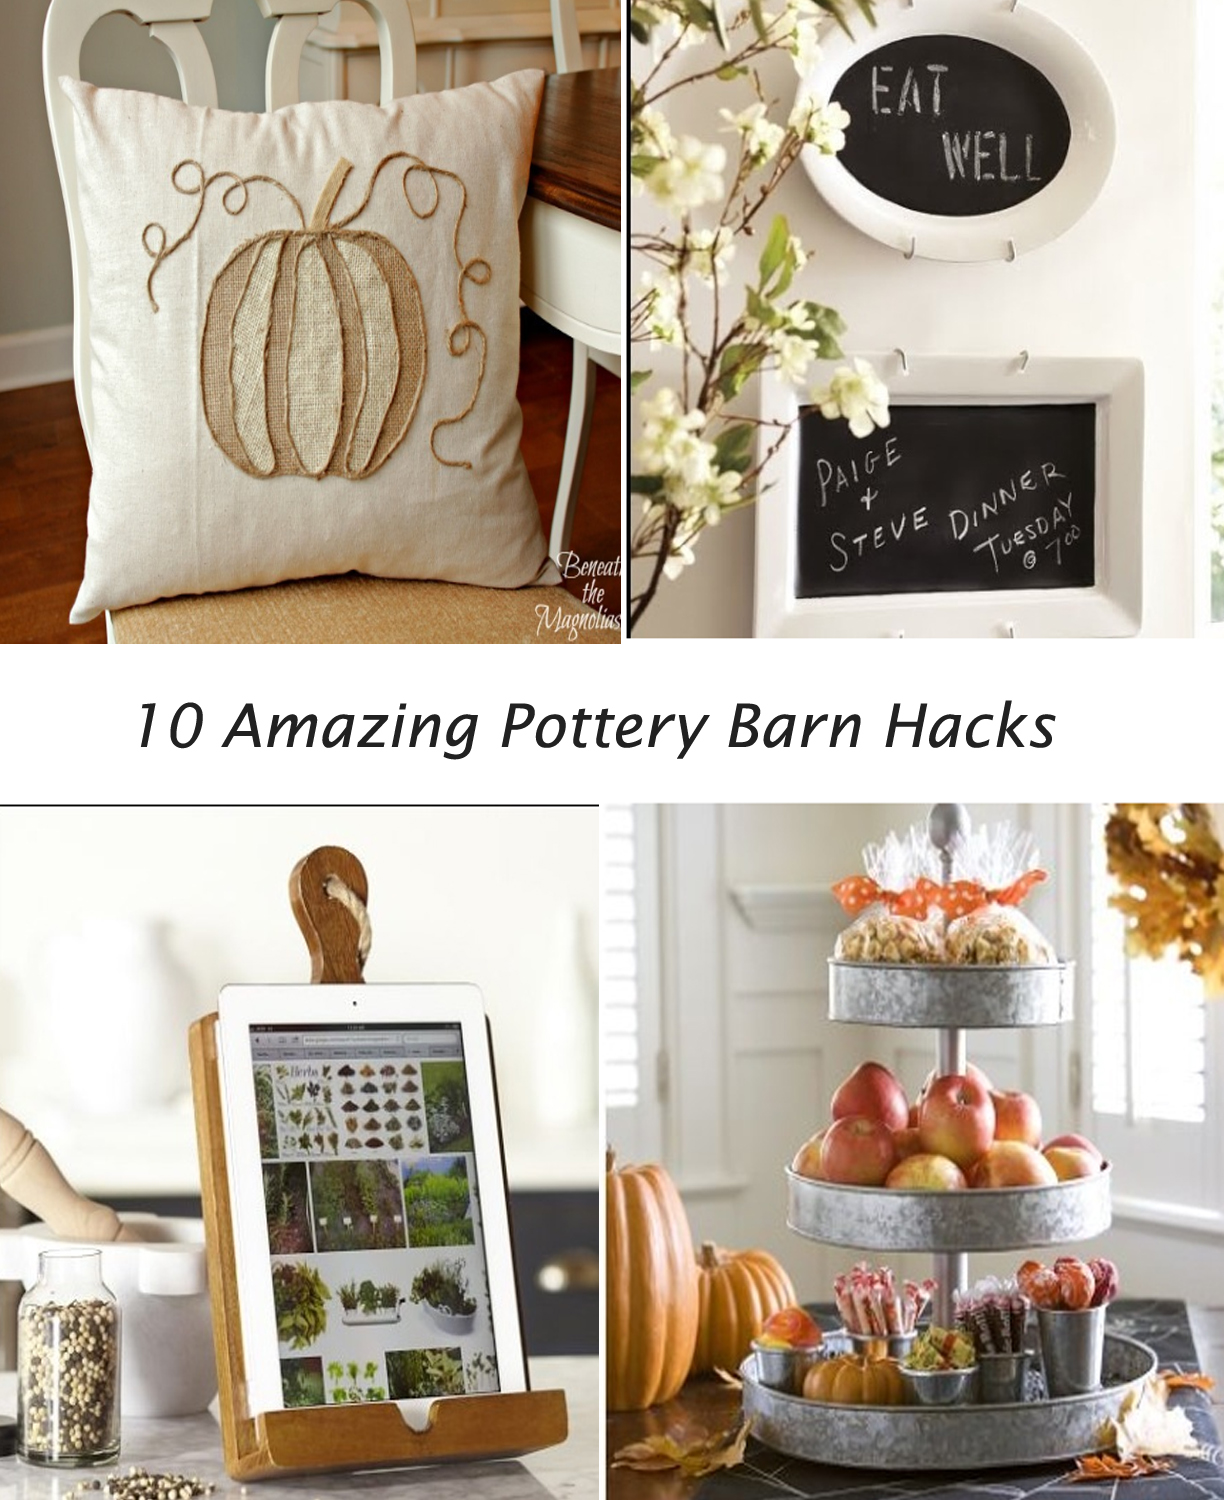 Ten Pottery Barn Hacks